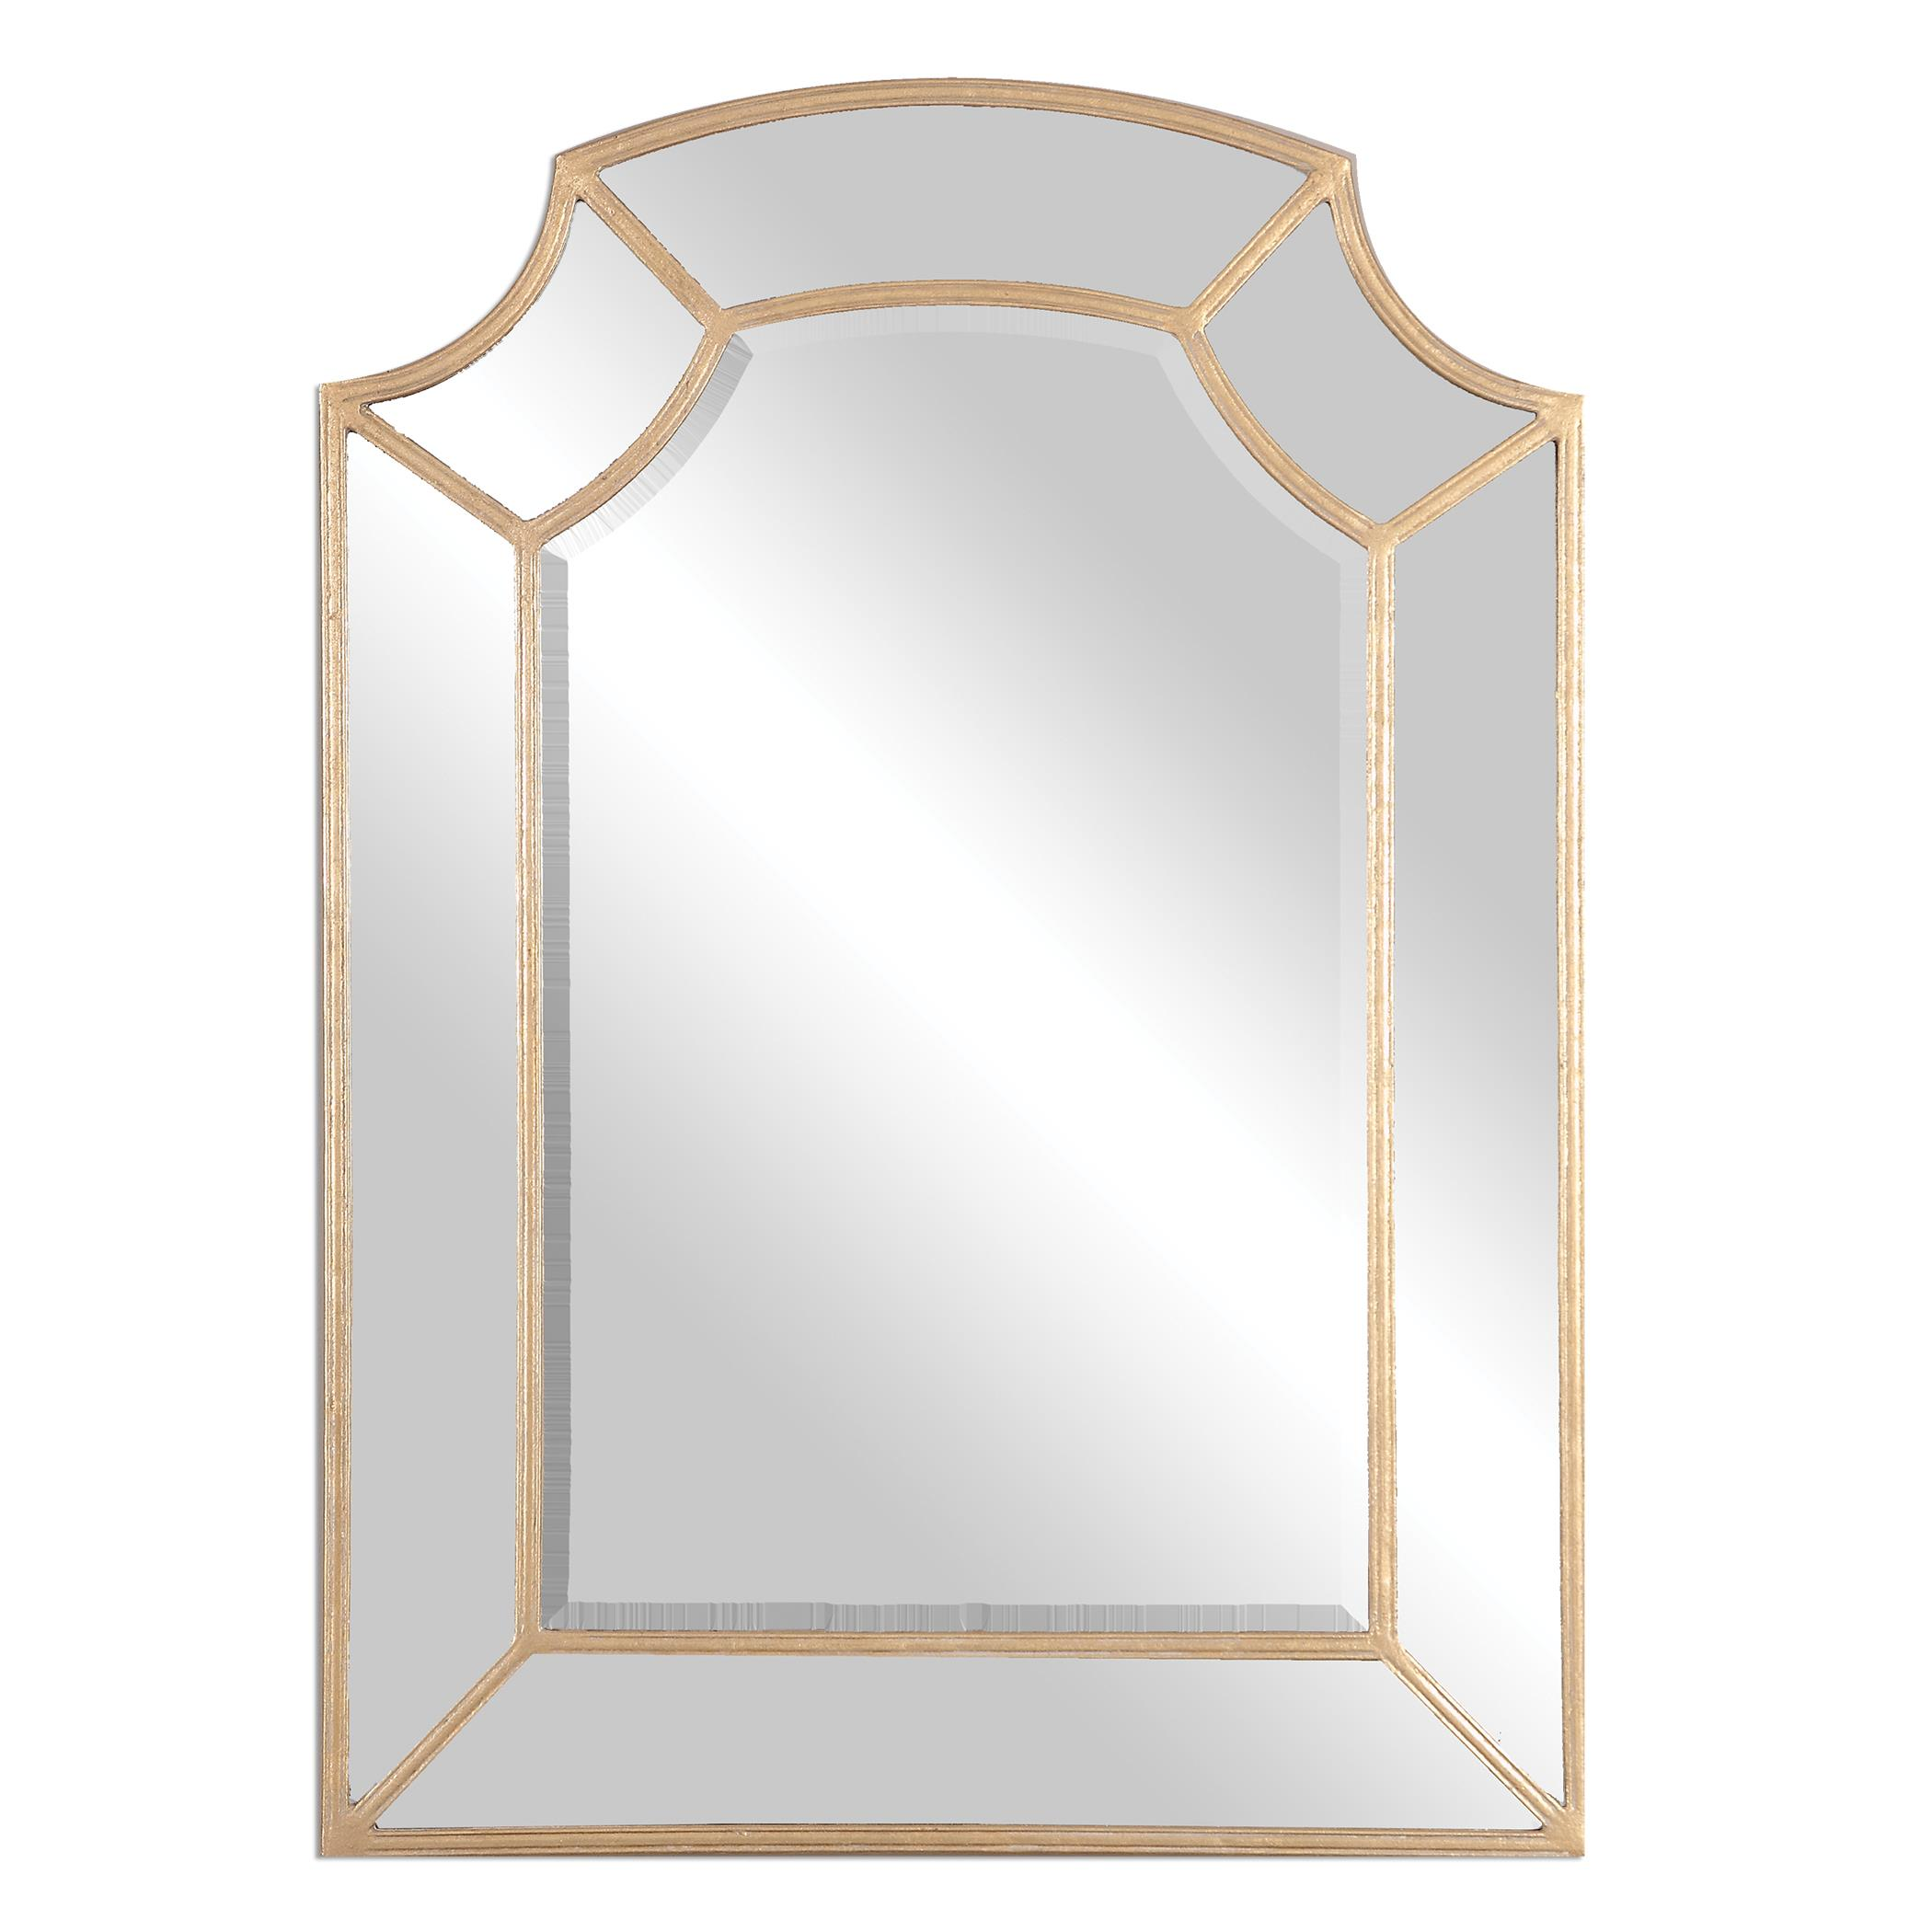 Uttermost Mirrors Francoli Gold Arch Mirror - Item Number: 12929